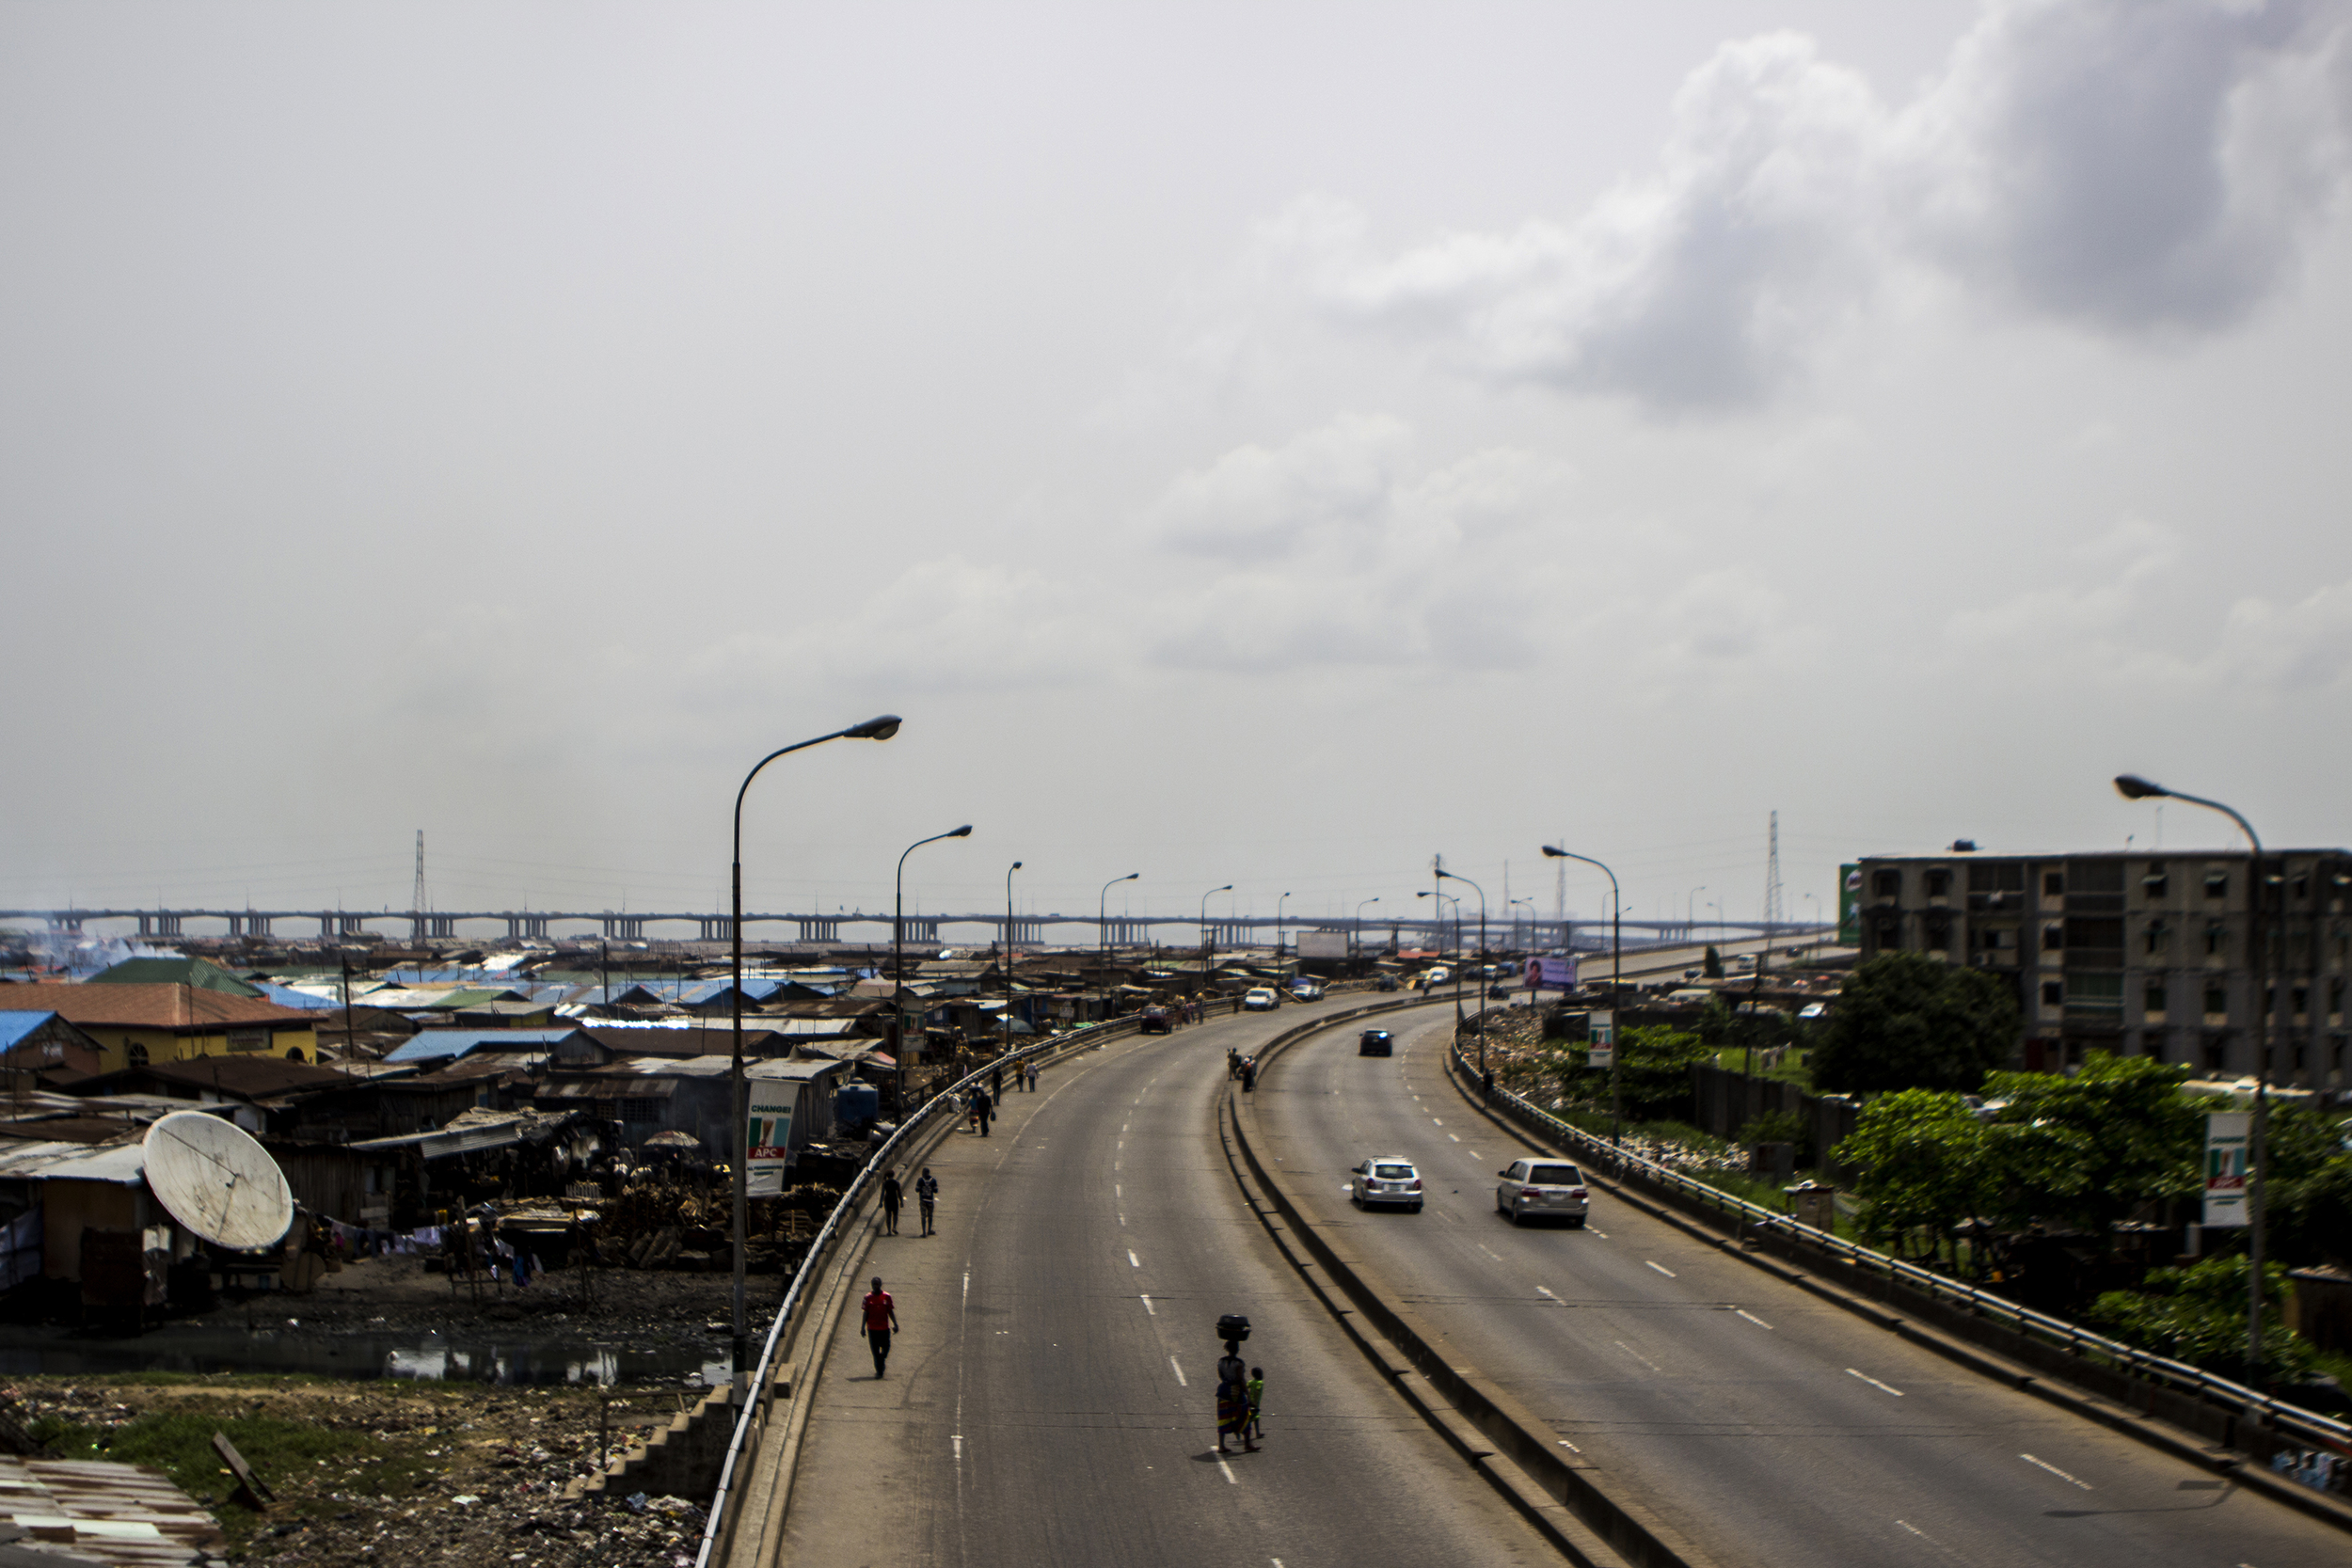 Lagos, Nigeria. Feb. 26, 2015. The floating village of Makoko sits just beside a highway overpass in Lagos.